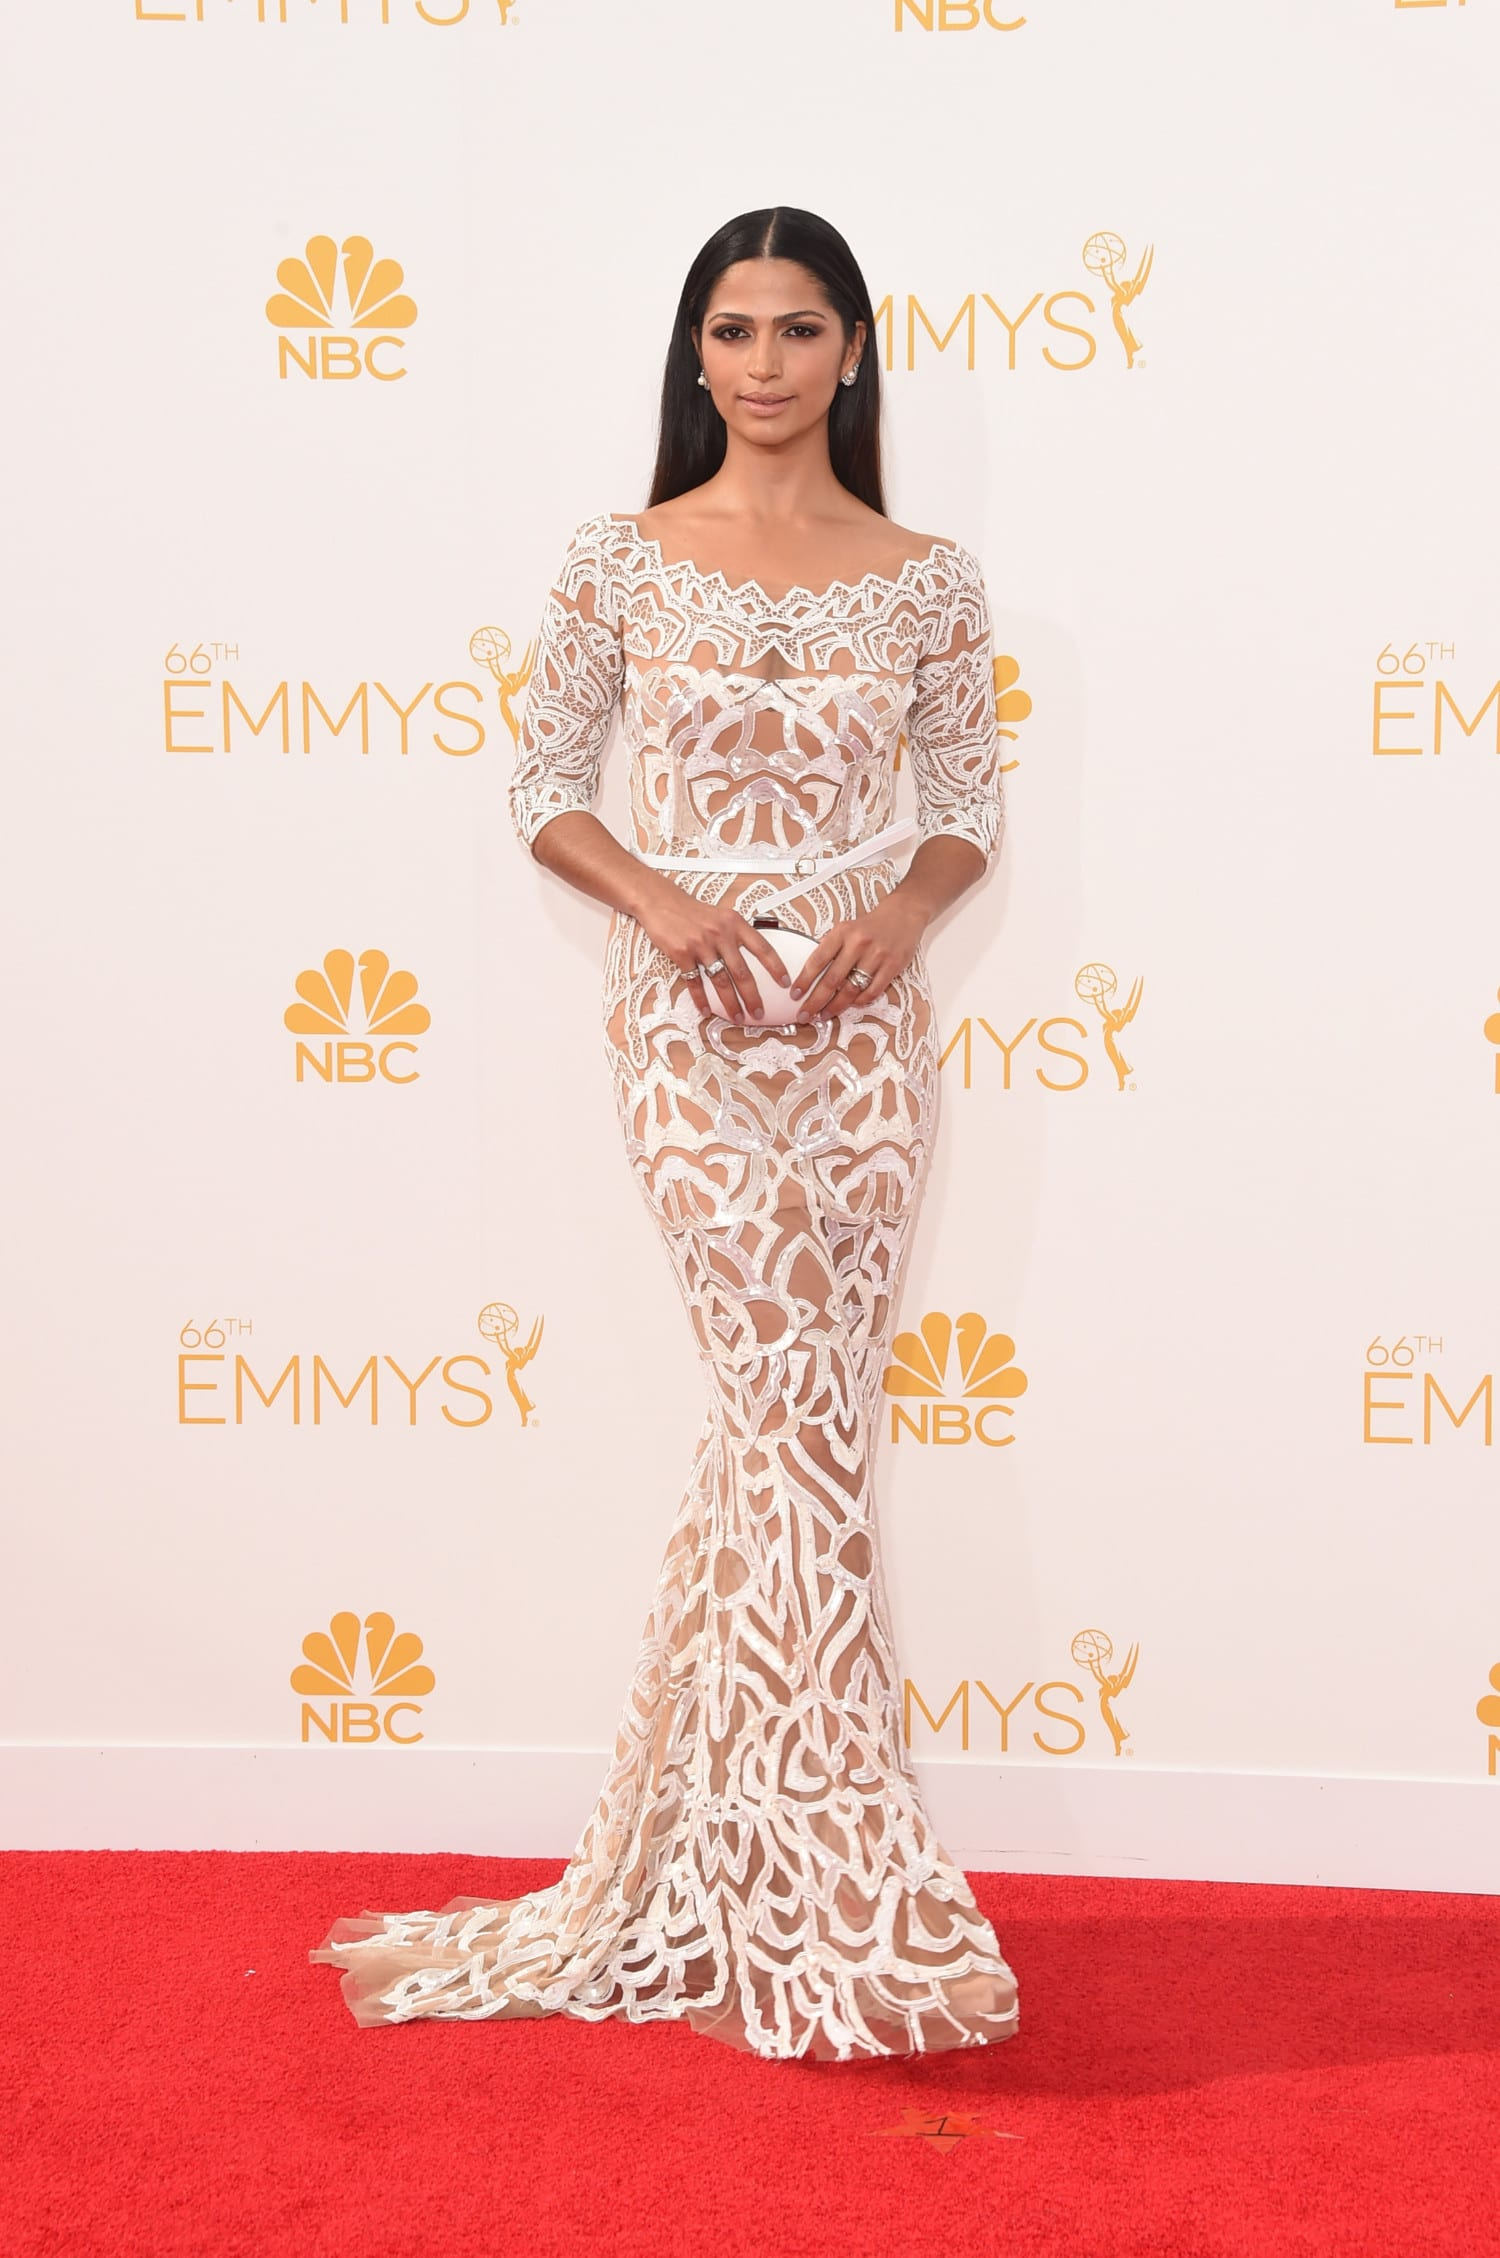 Camila Alves 2014 emmys photo